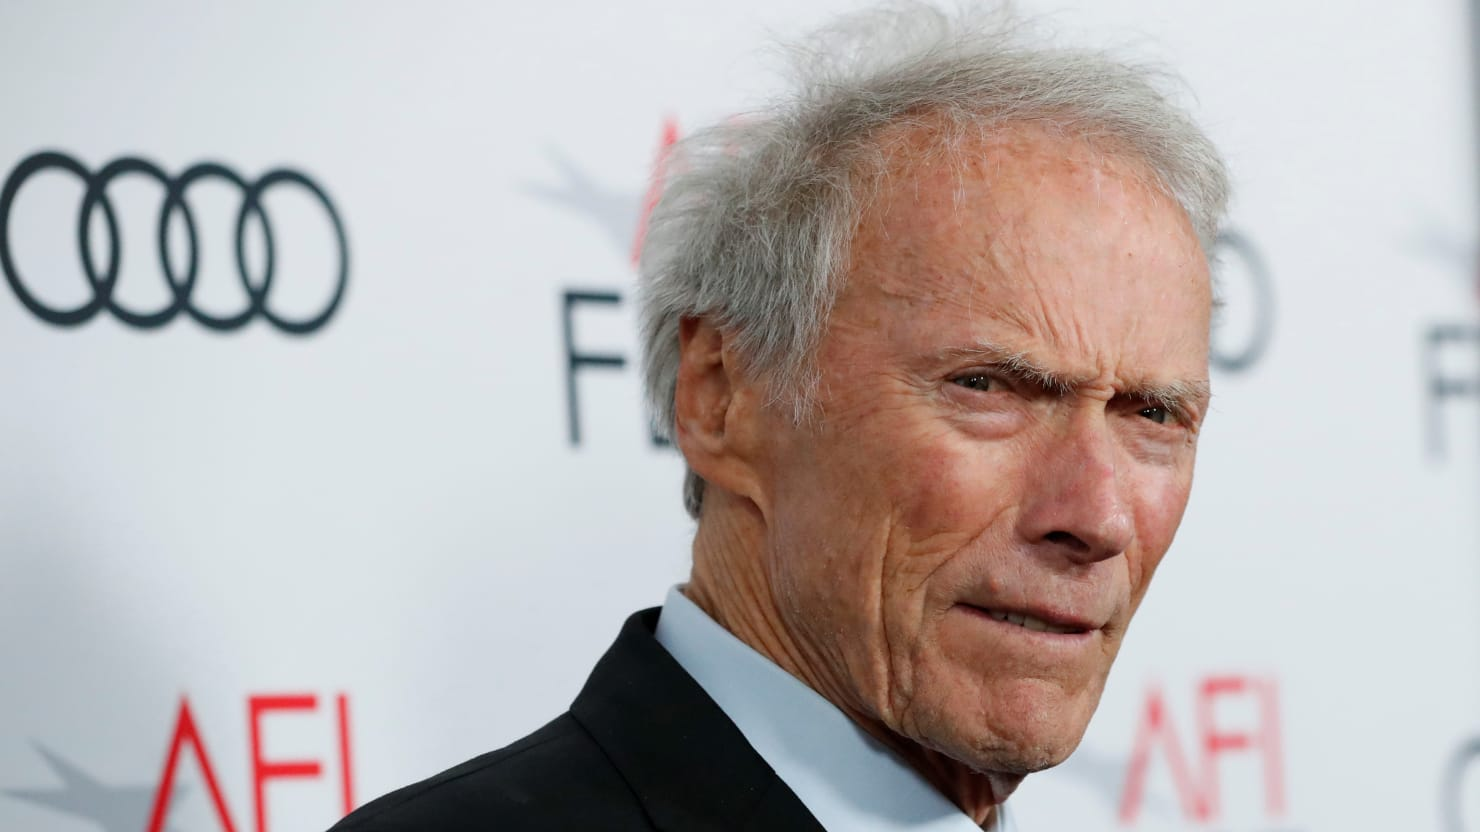 AJC Hires Media Scourge to Threaten Clint Eastwood Over 'Richard Jewell'